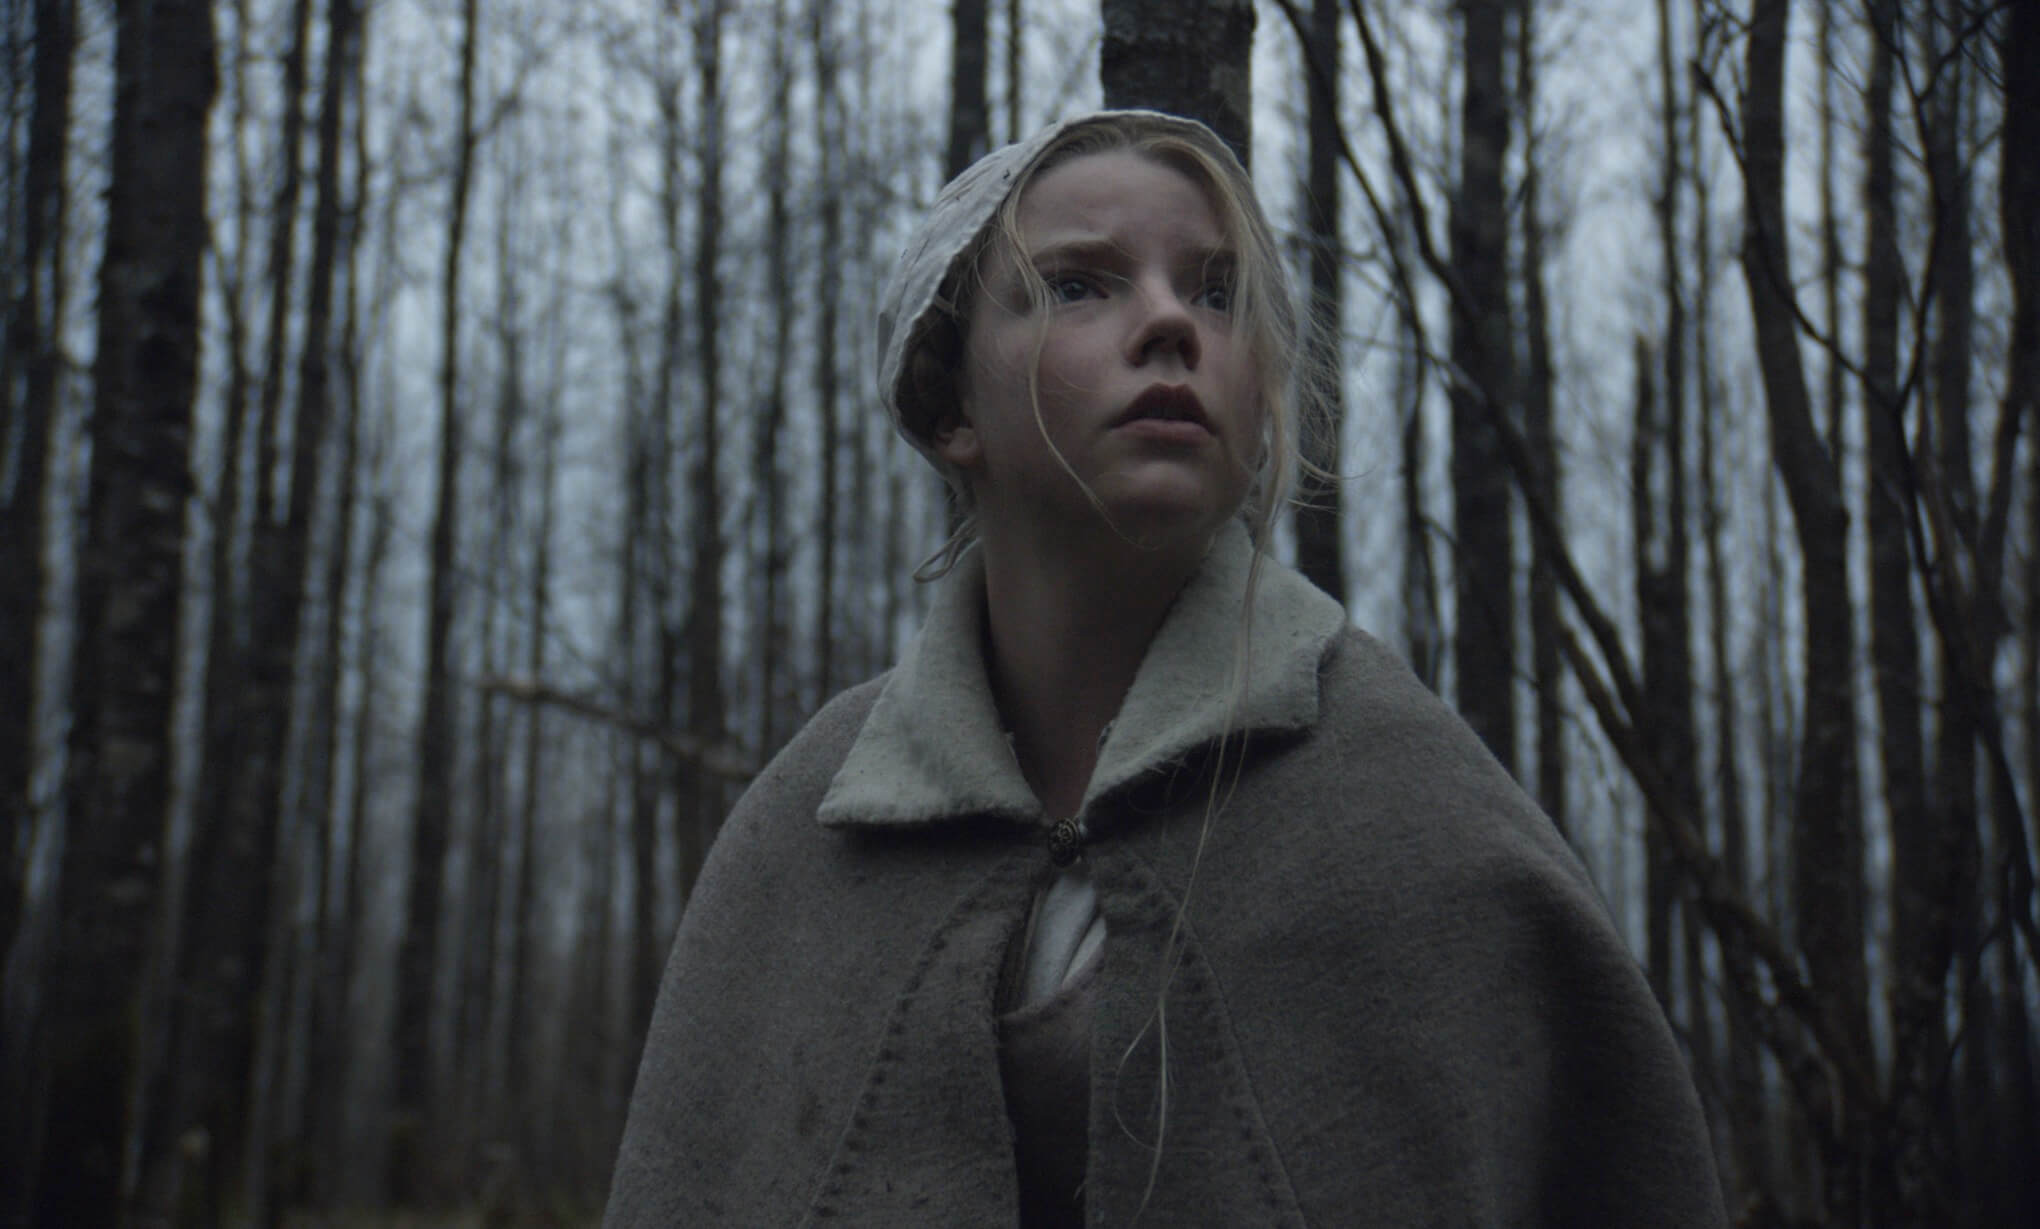 The Witch 2015 Feature Article Fear of the Woods